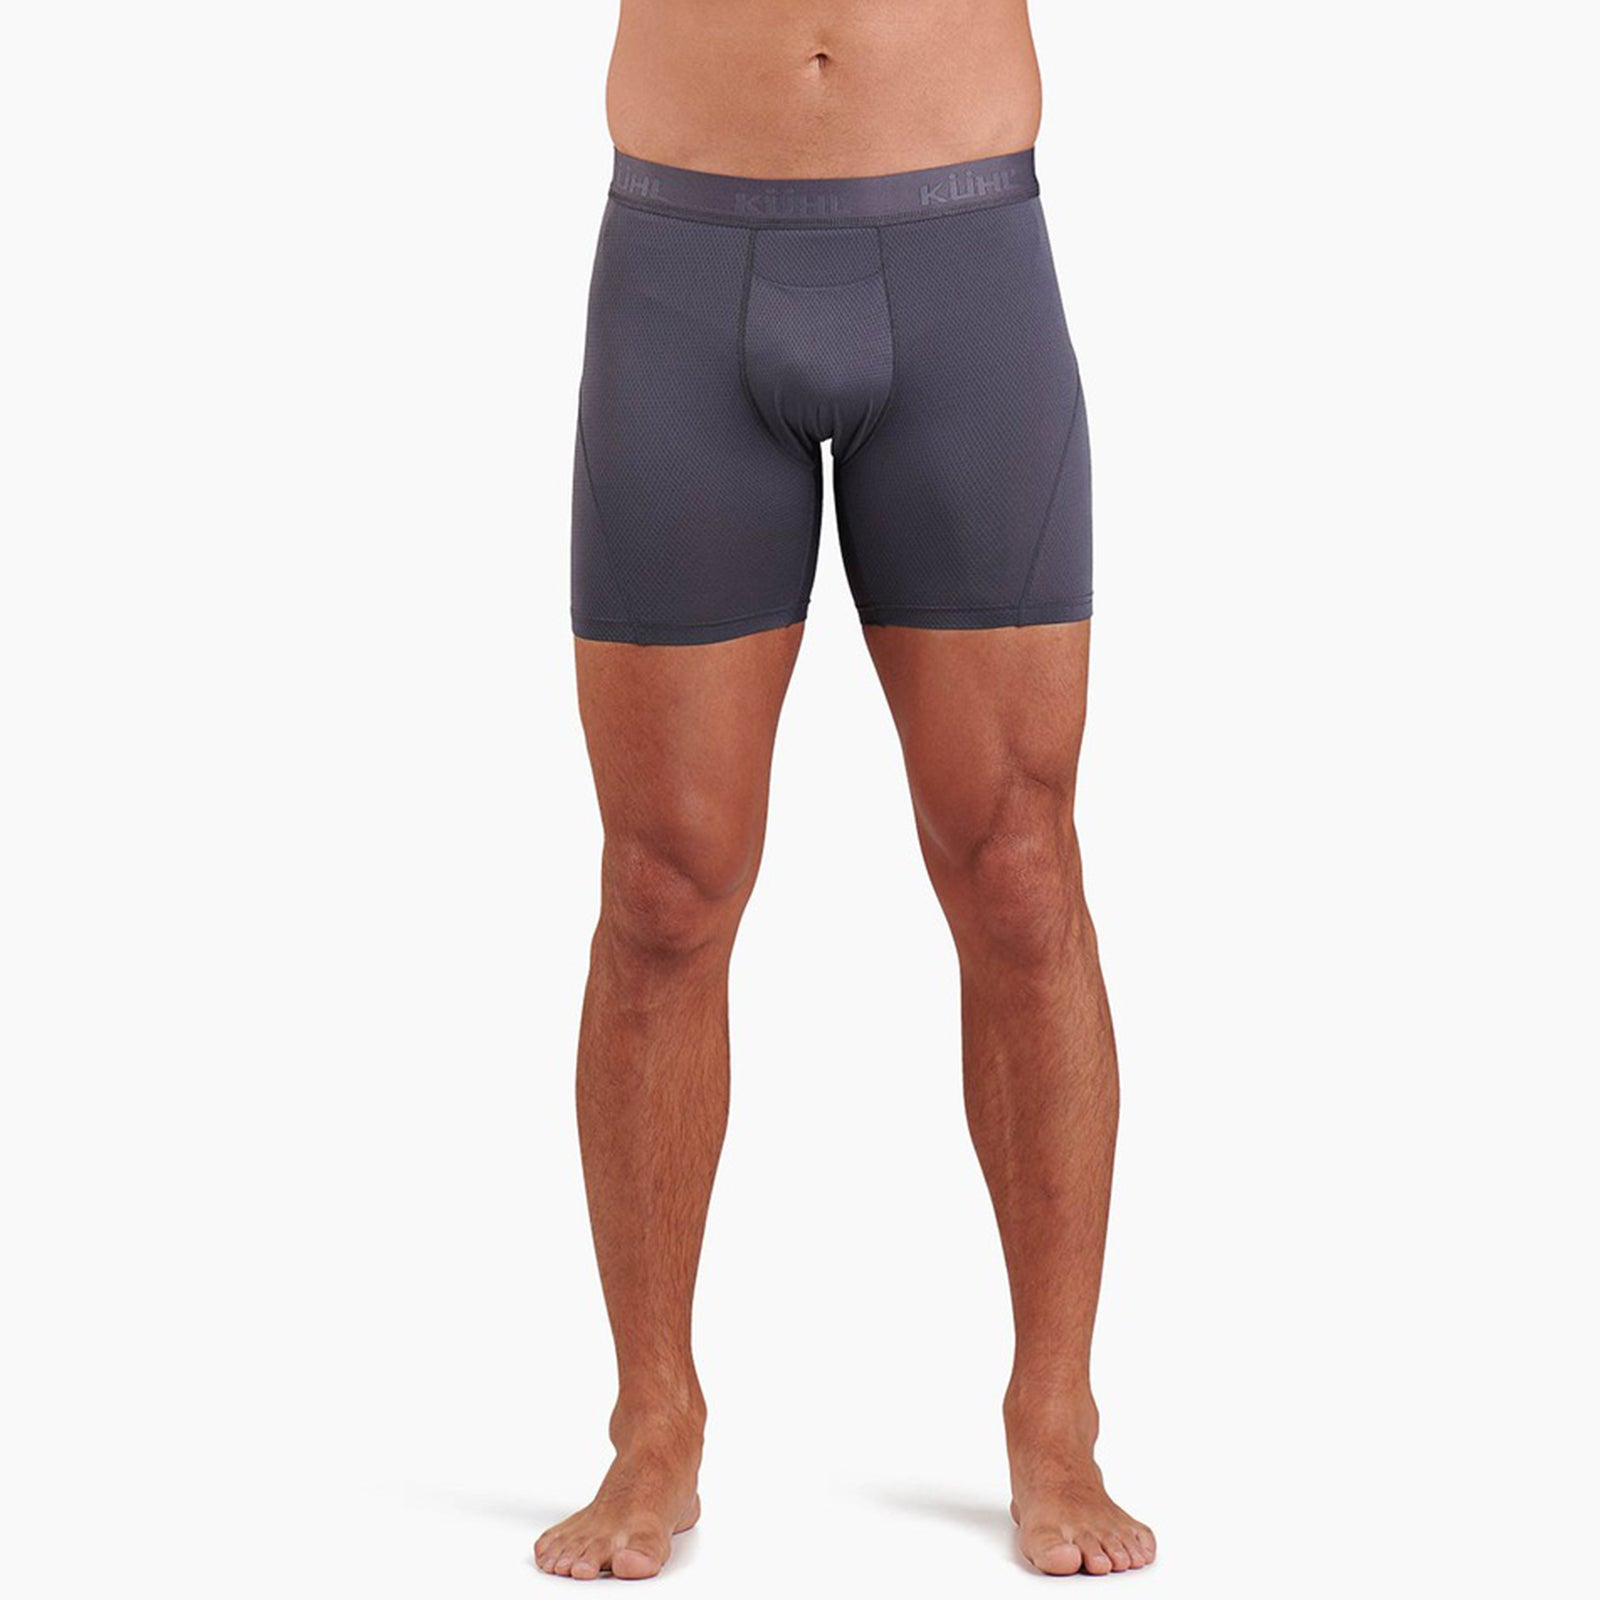 kuhl boxer brief mens on model front view in color grey